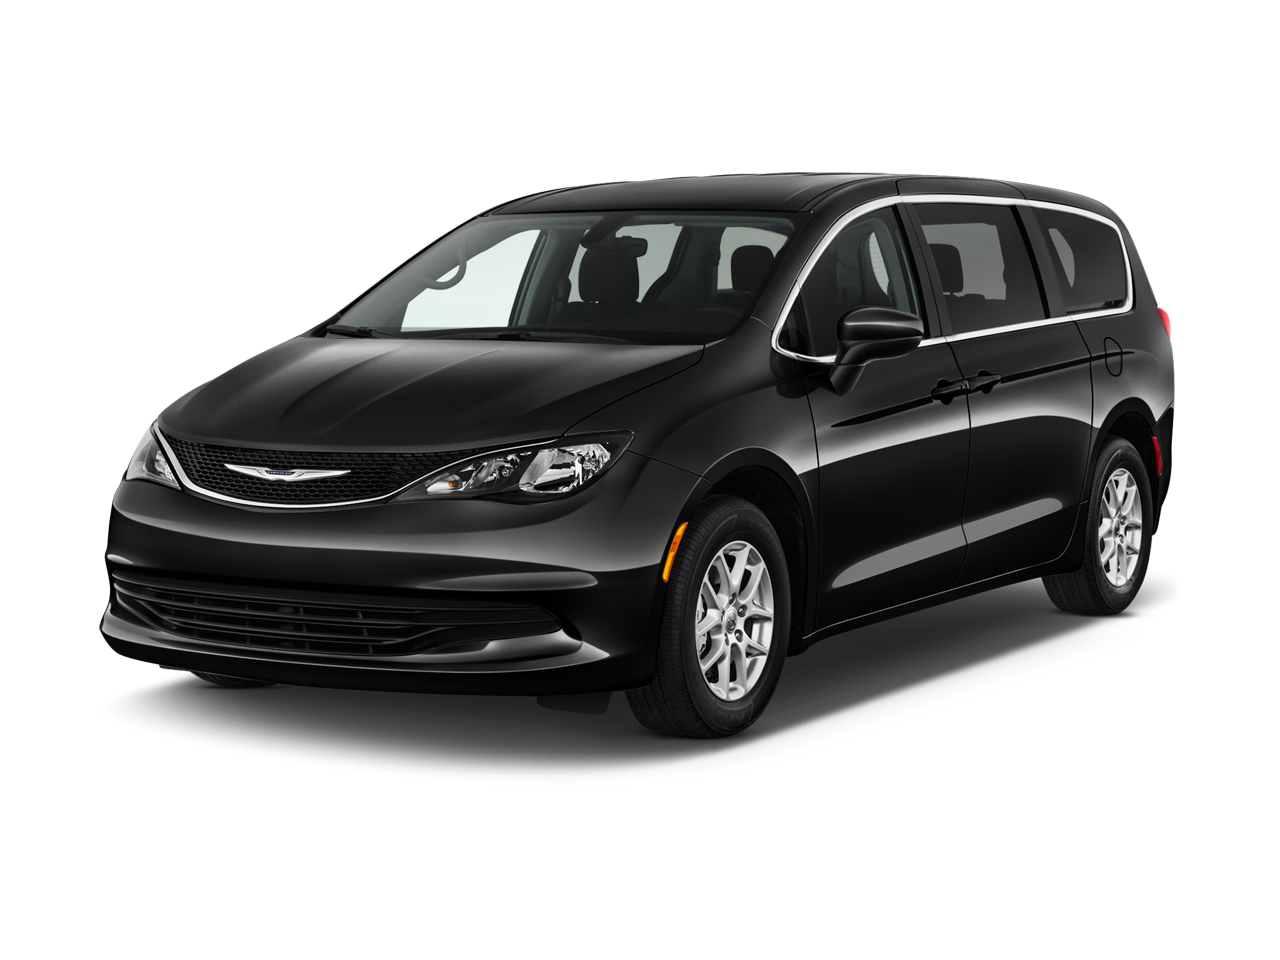 new 2017 chrysler pacifica touring l plus near gainesville ga hayes chrysler dodge jeep. Black Bedroom Furniture Sets. Home Design Ideas